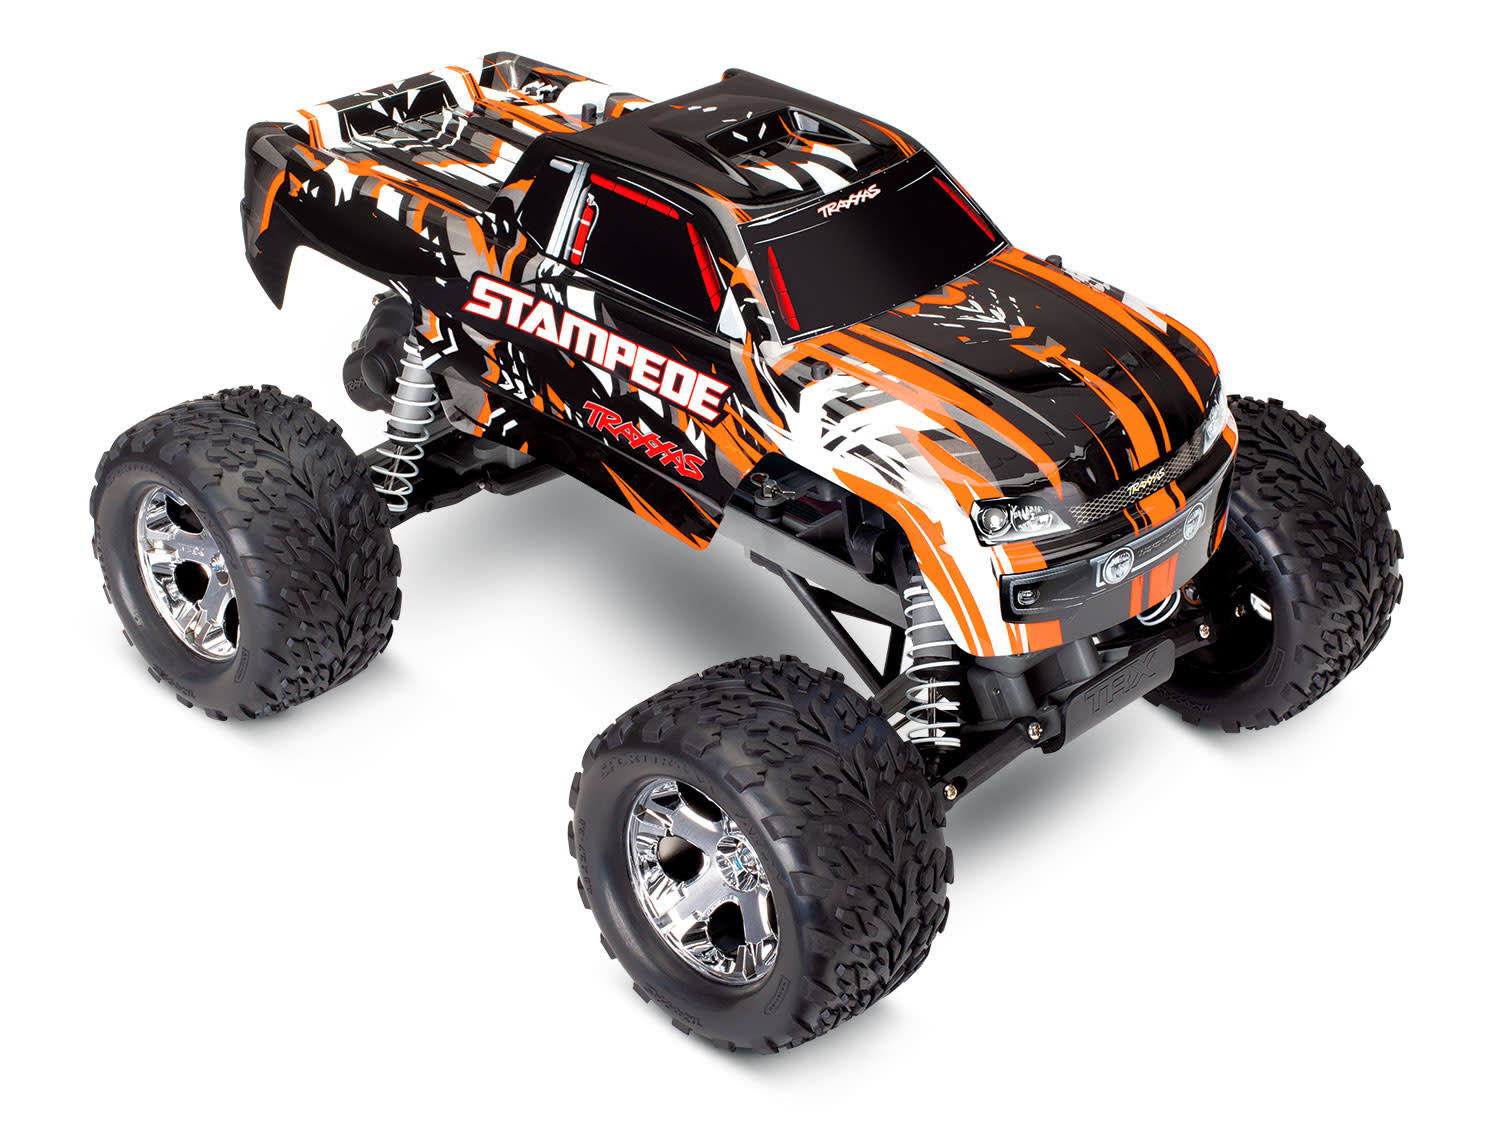 Traxxas 36054-4 - Stampede XL-5 1/10 2WD Monster Truck RTR, Orange